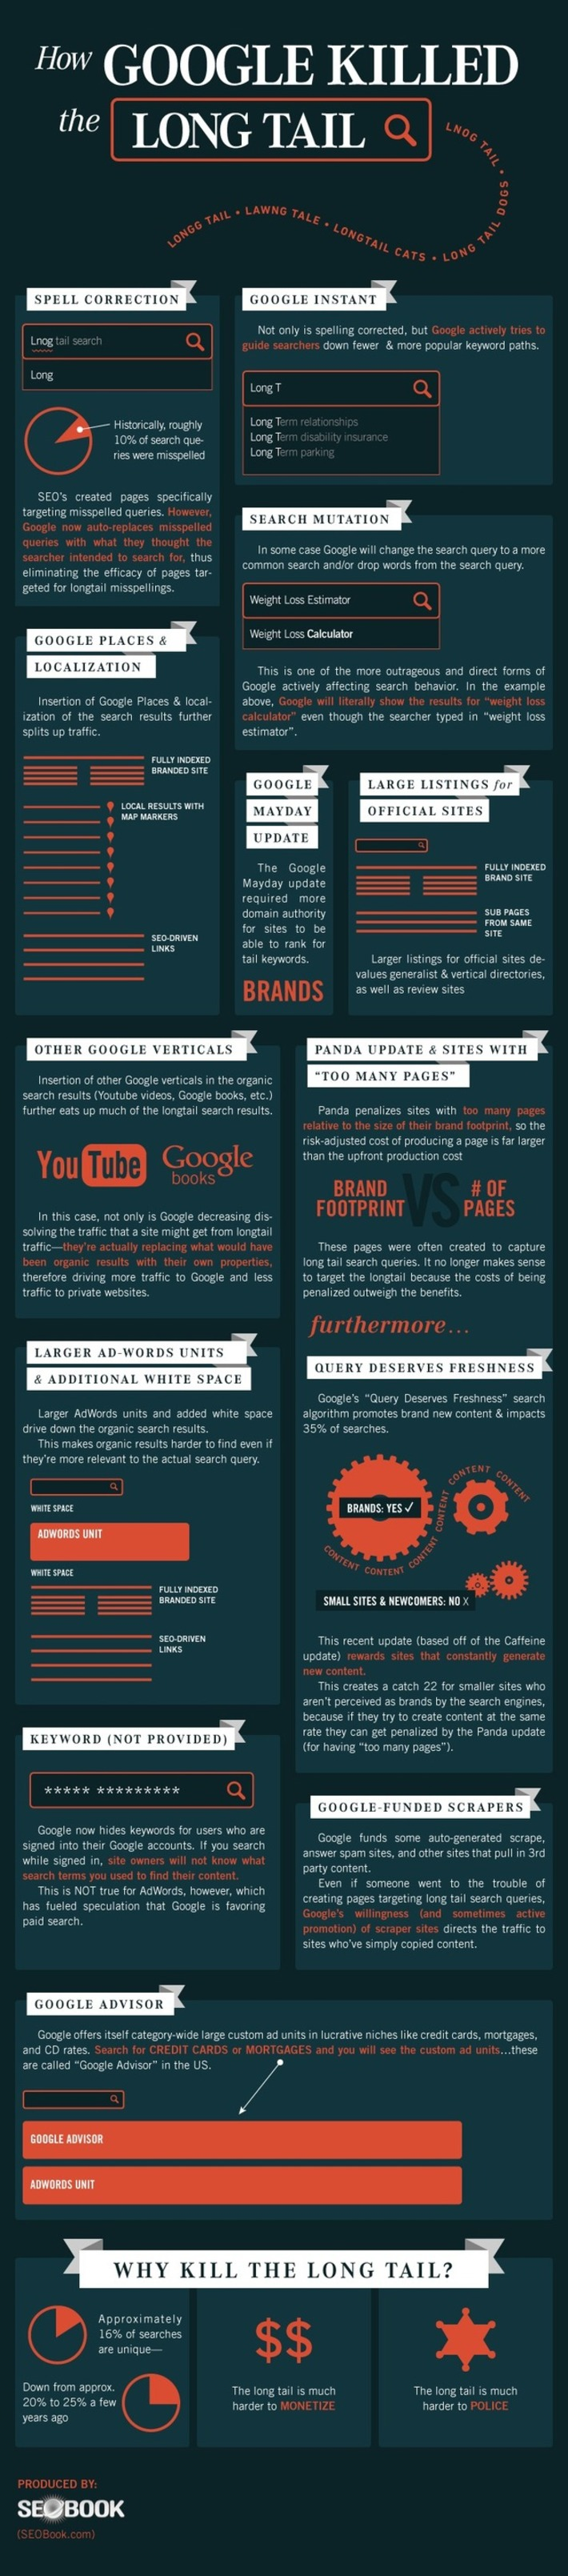 Why and How Google Killed the Long Tail of Search Keywords [INFOGRAPHIC] [MUST READ] | Readin', 'Ritin', and (Publishing) 'Rithmetic | Scoop.it